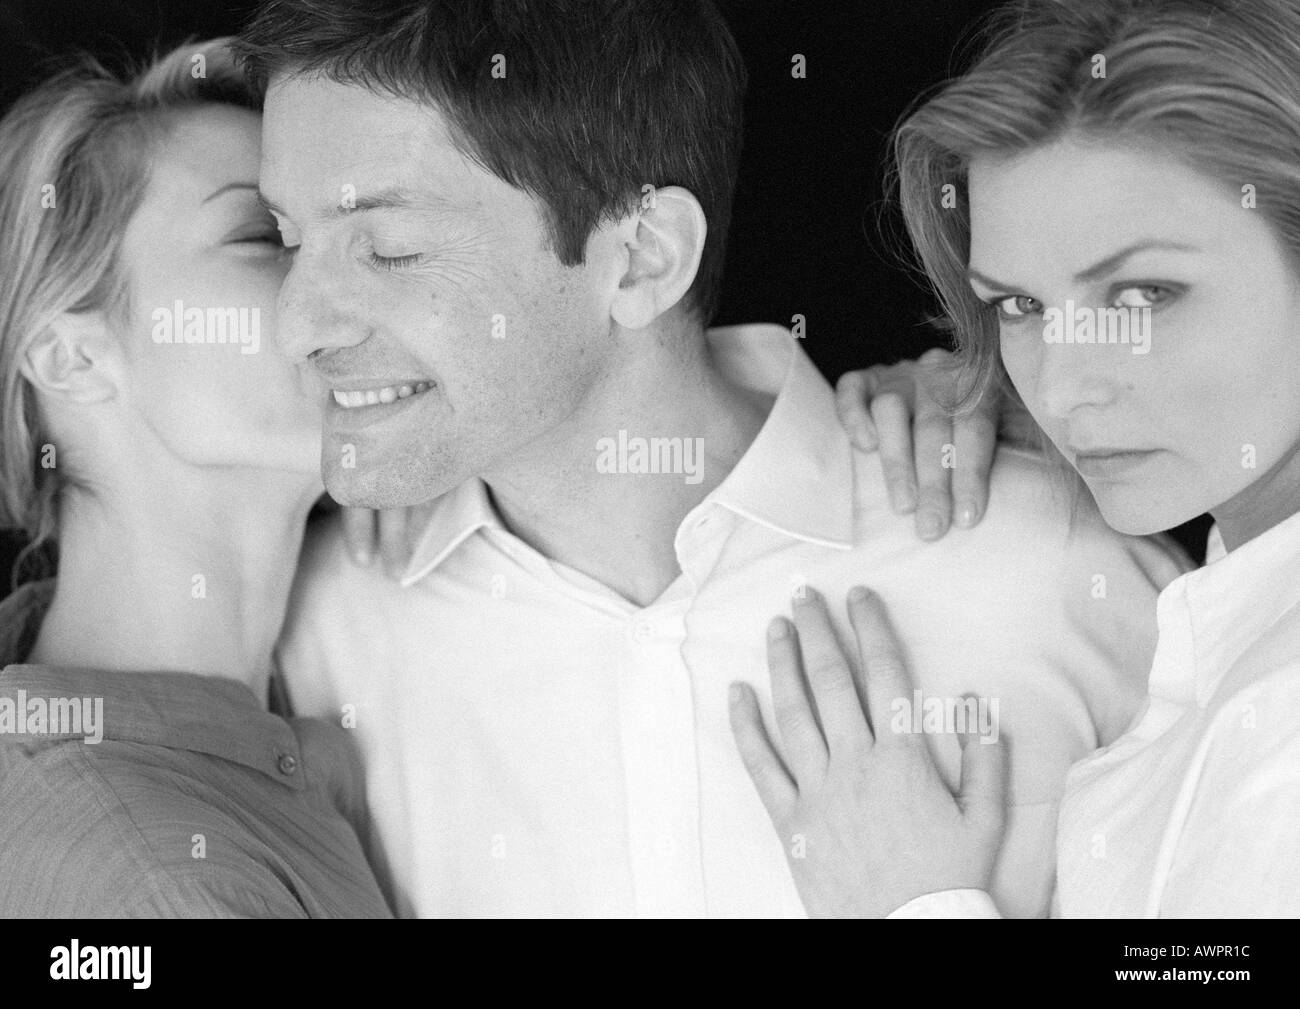 Man standing between two women, being kissed by one, b&w - Stock Image